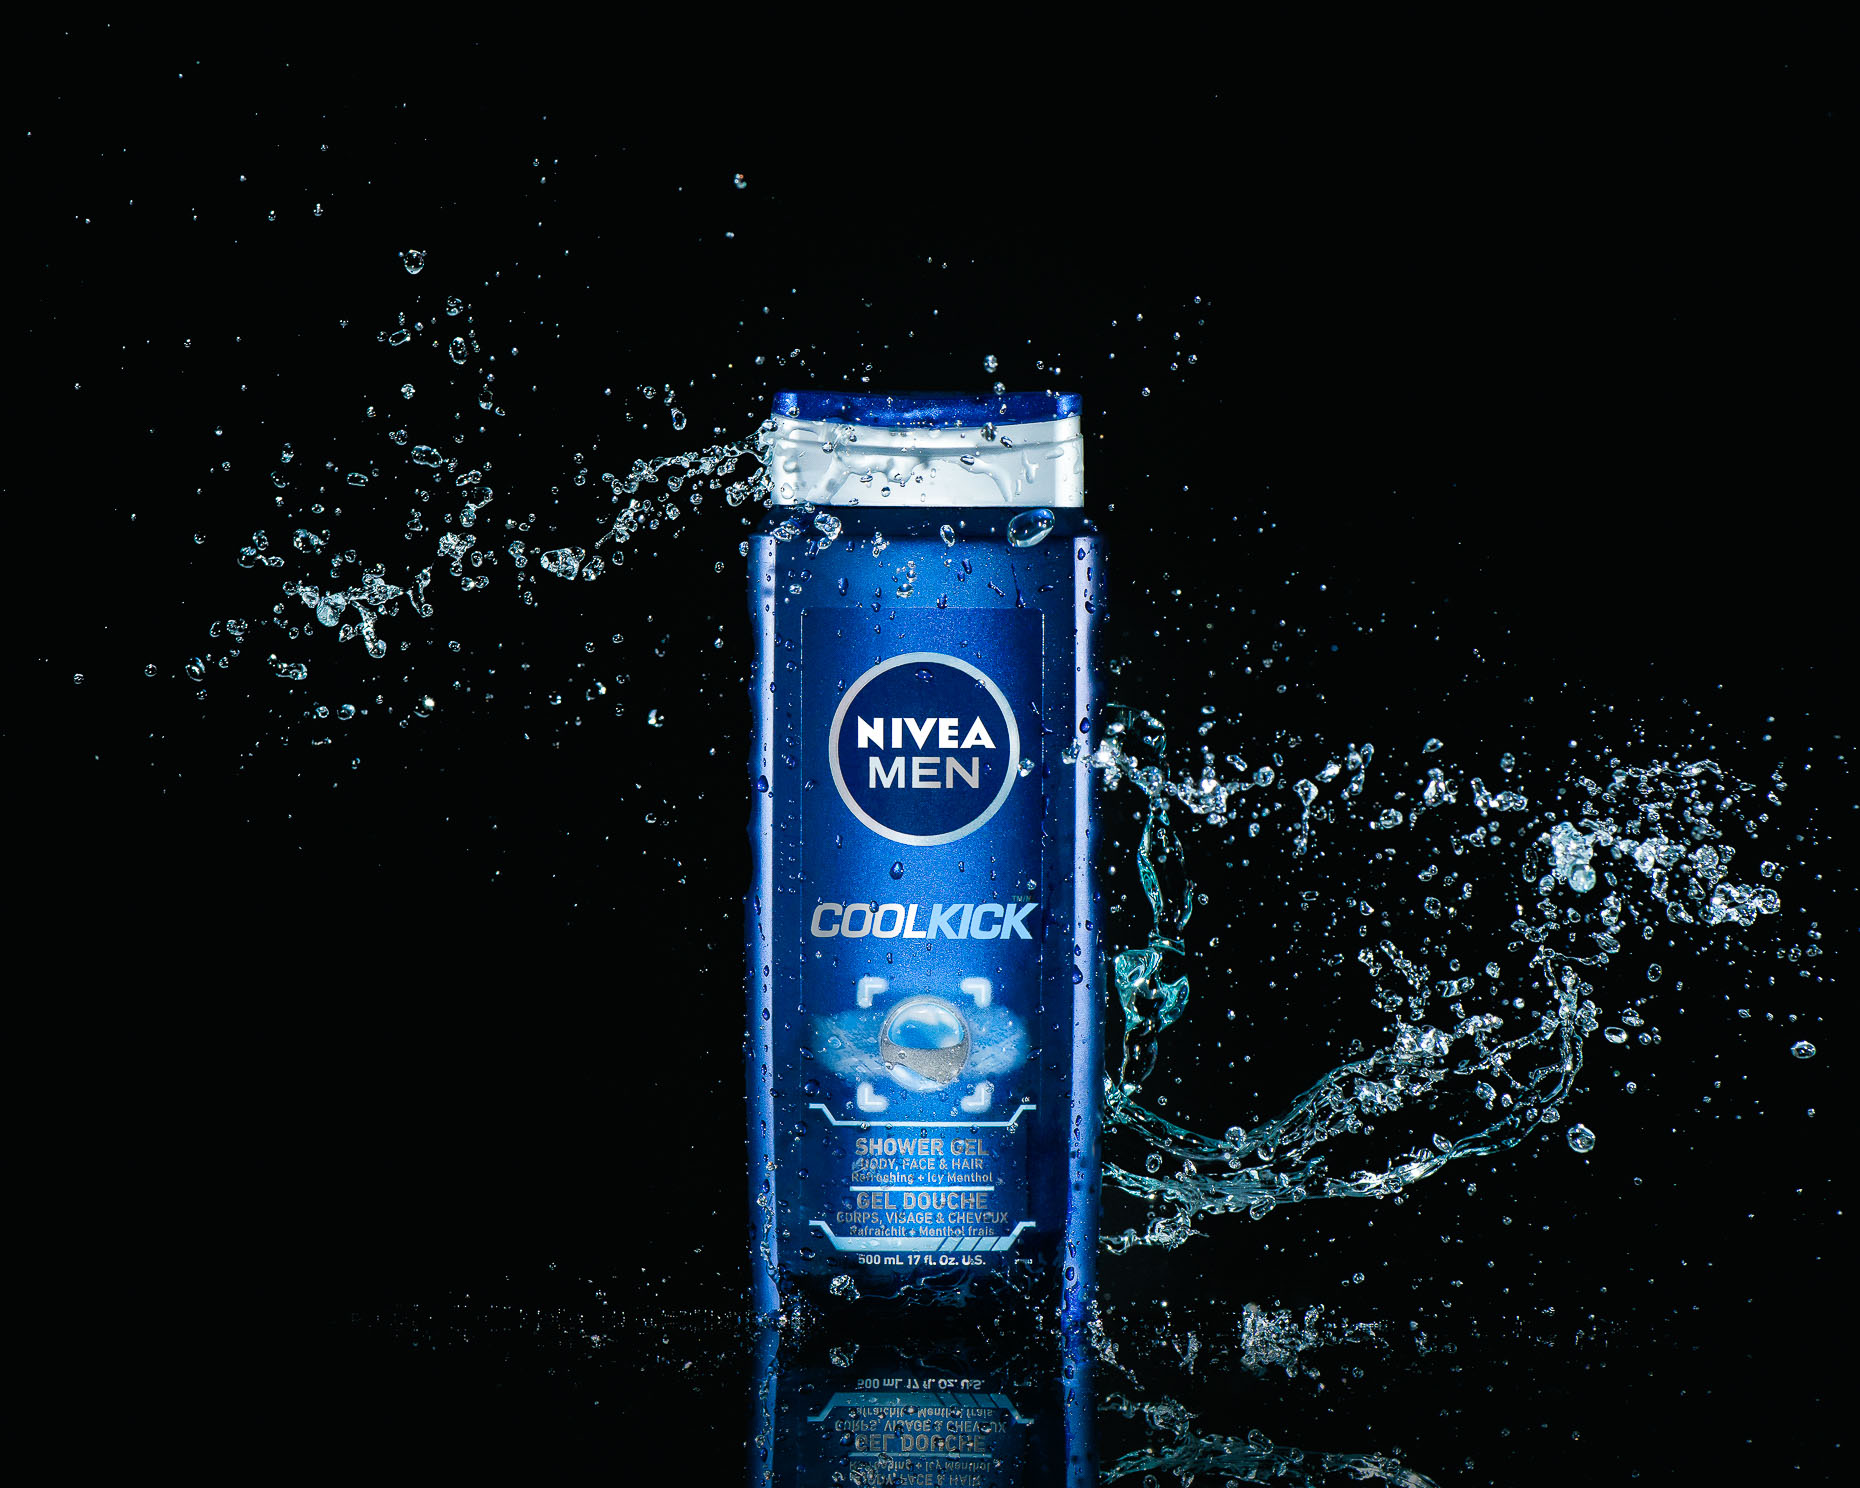 Nivea Cool Kick Shower Gel - Christophe Benard Photography - Edmonton Commercial Photographer, Edmonton Commercial Photography, Edmonton Product Photographer, Edmonton Product Photography, Still Life Photographer in Canada, Product Photographer in Canada